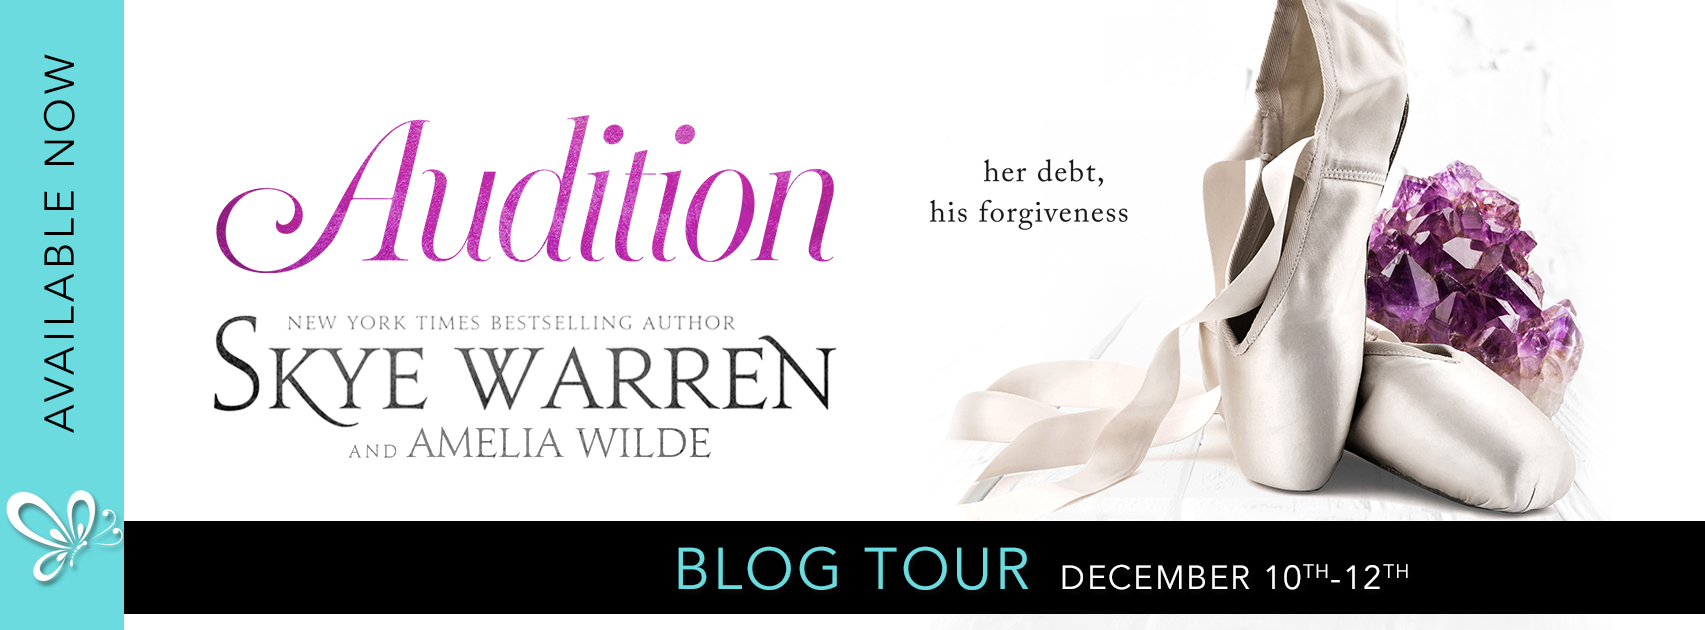 Social Butterly PR Blog Tour: Audition by Skye Warren & Amelia Wilde